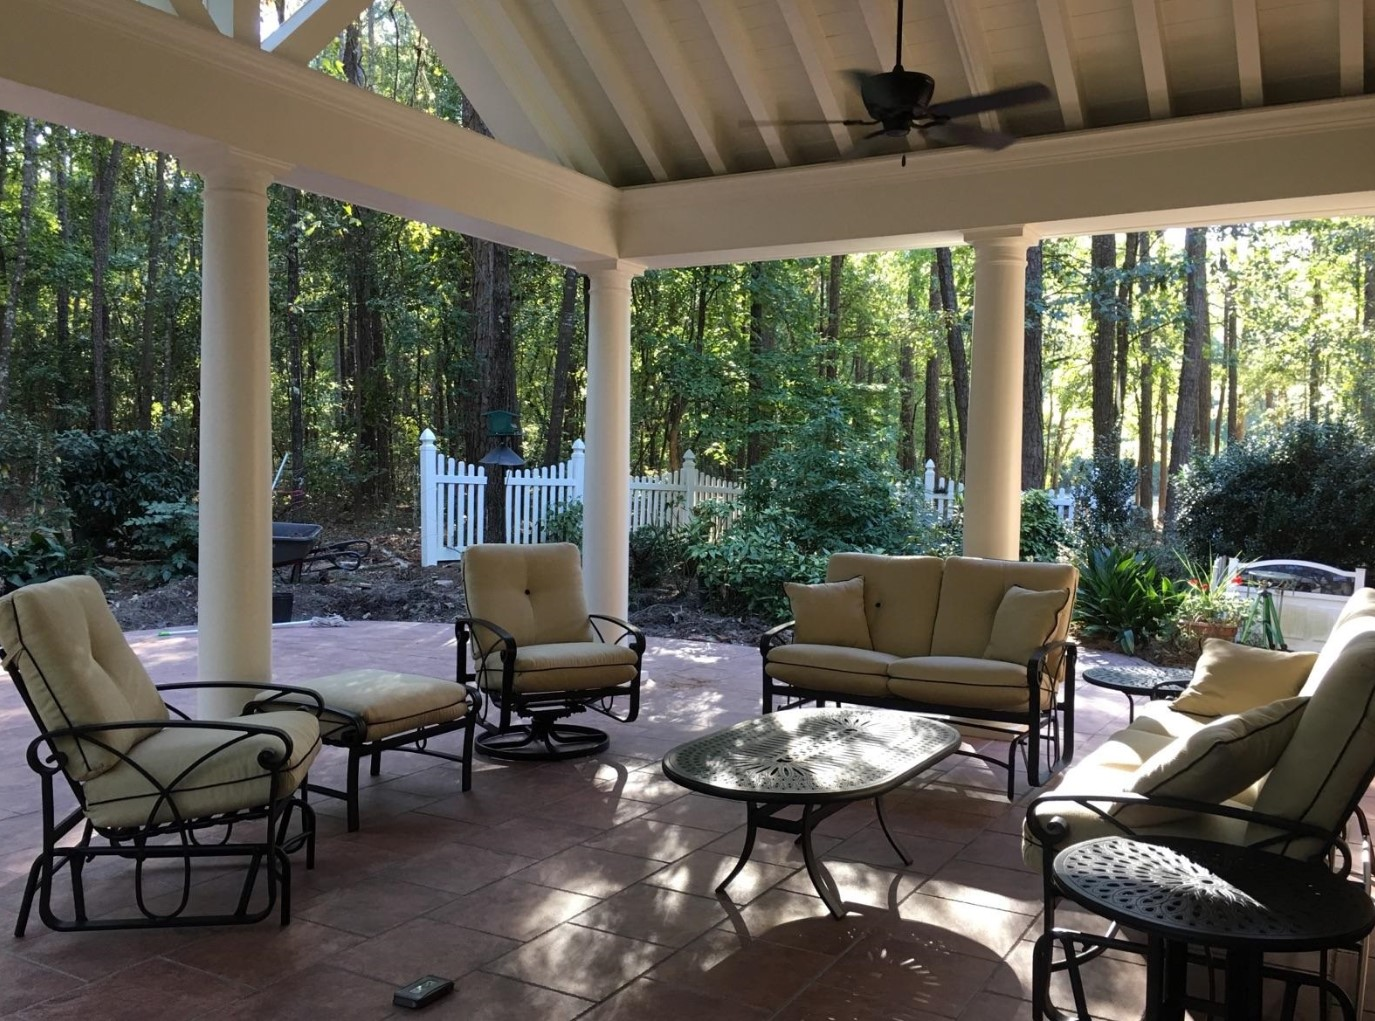 Seating area under covered patio